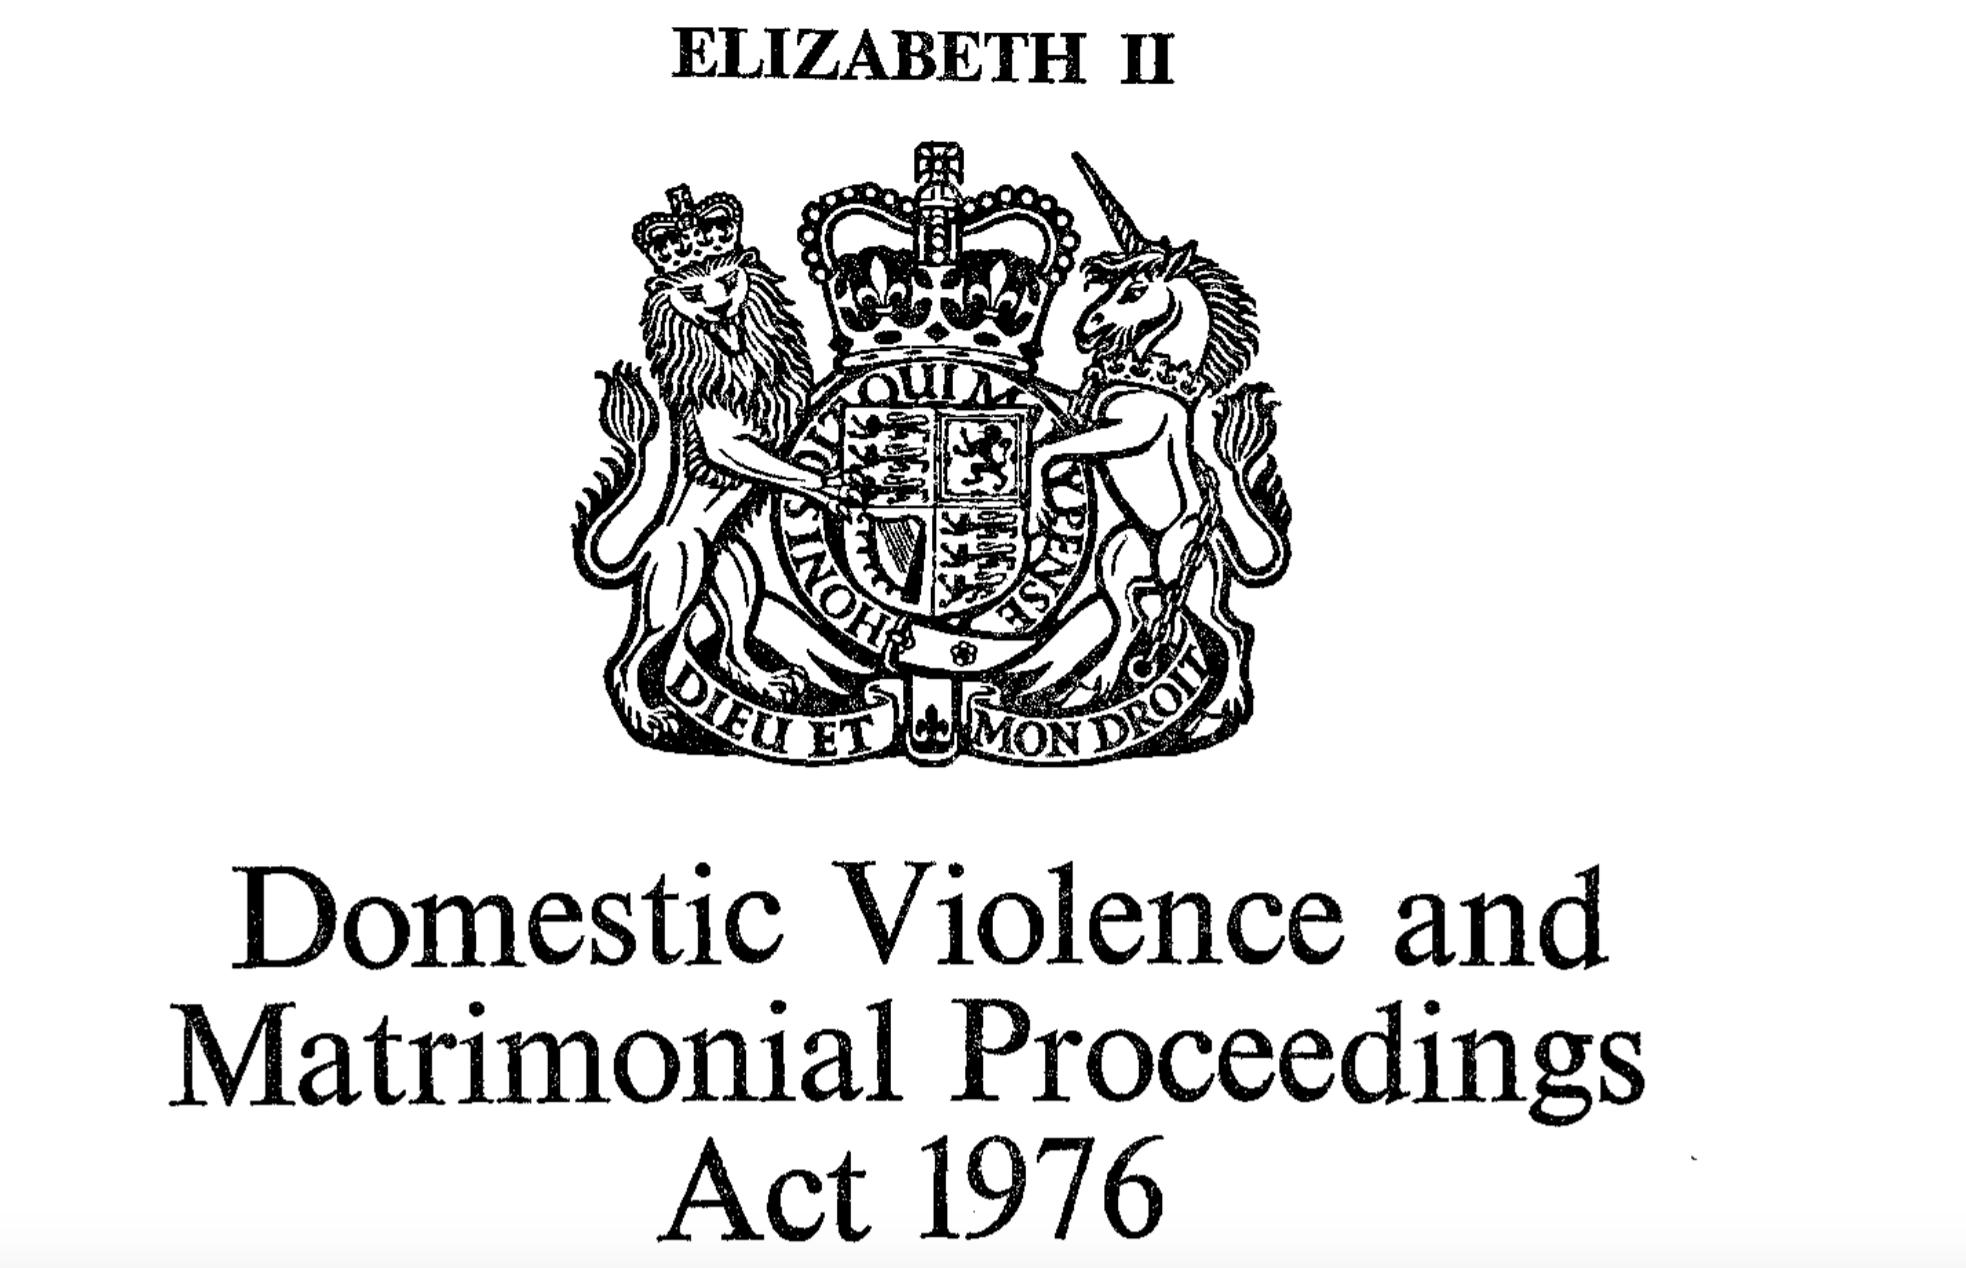 Image of the Domestic Violence and Matrimonial Proceedings Act 1976 with the Royal Coat of Arms